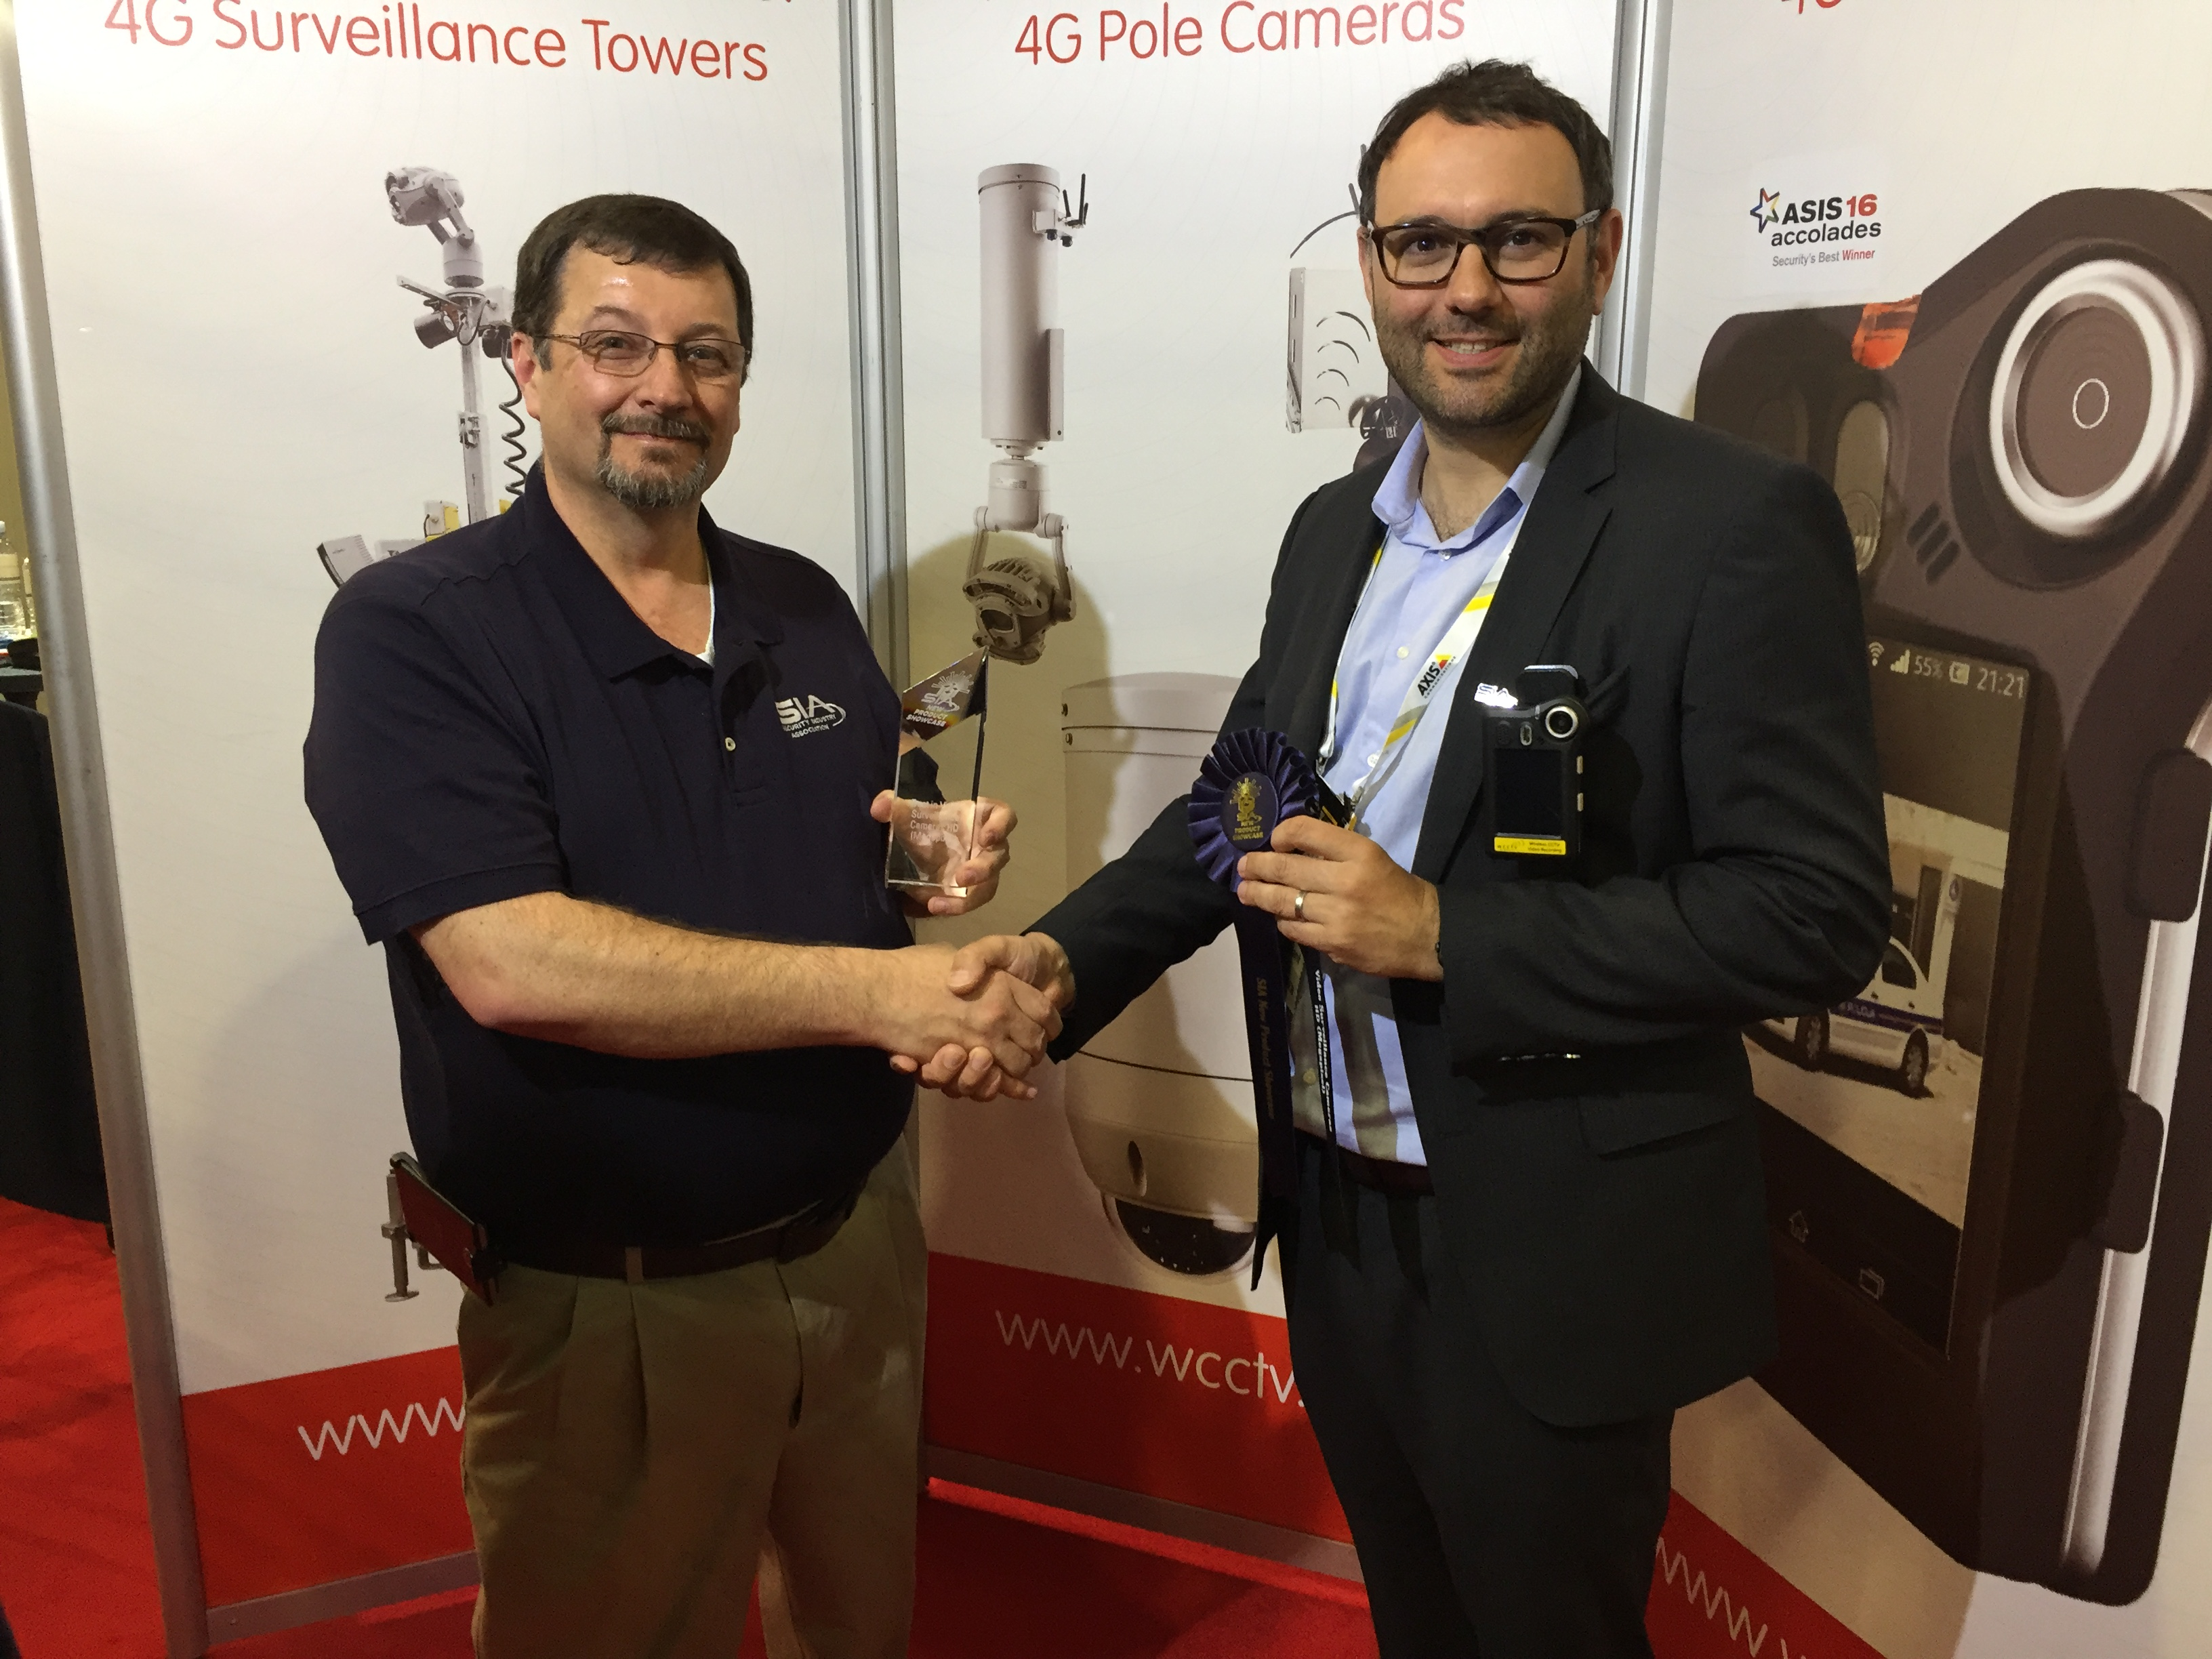 Image: WCCTV's Body Worn Camera recognised with SIA New Product Showcase Award at ISC West 2017